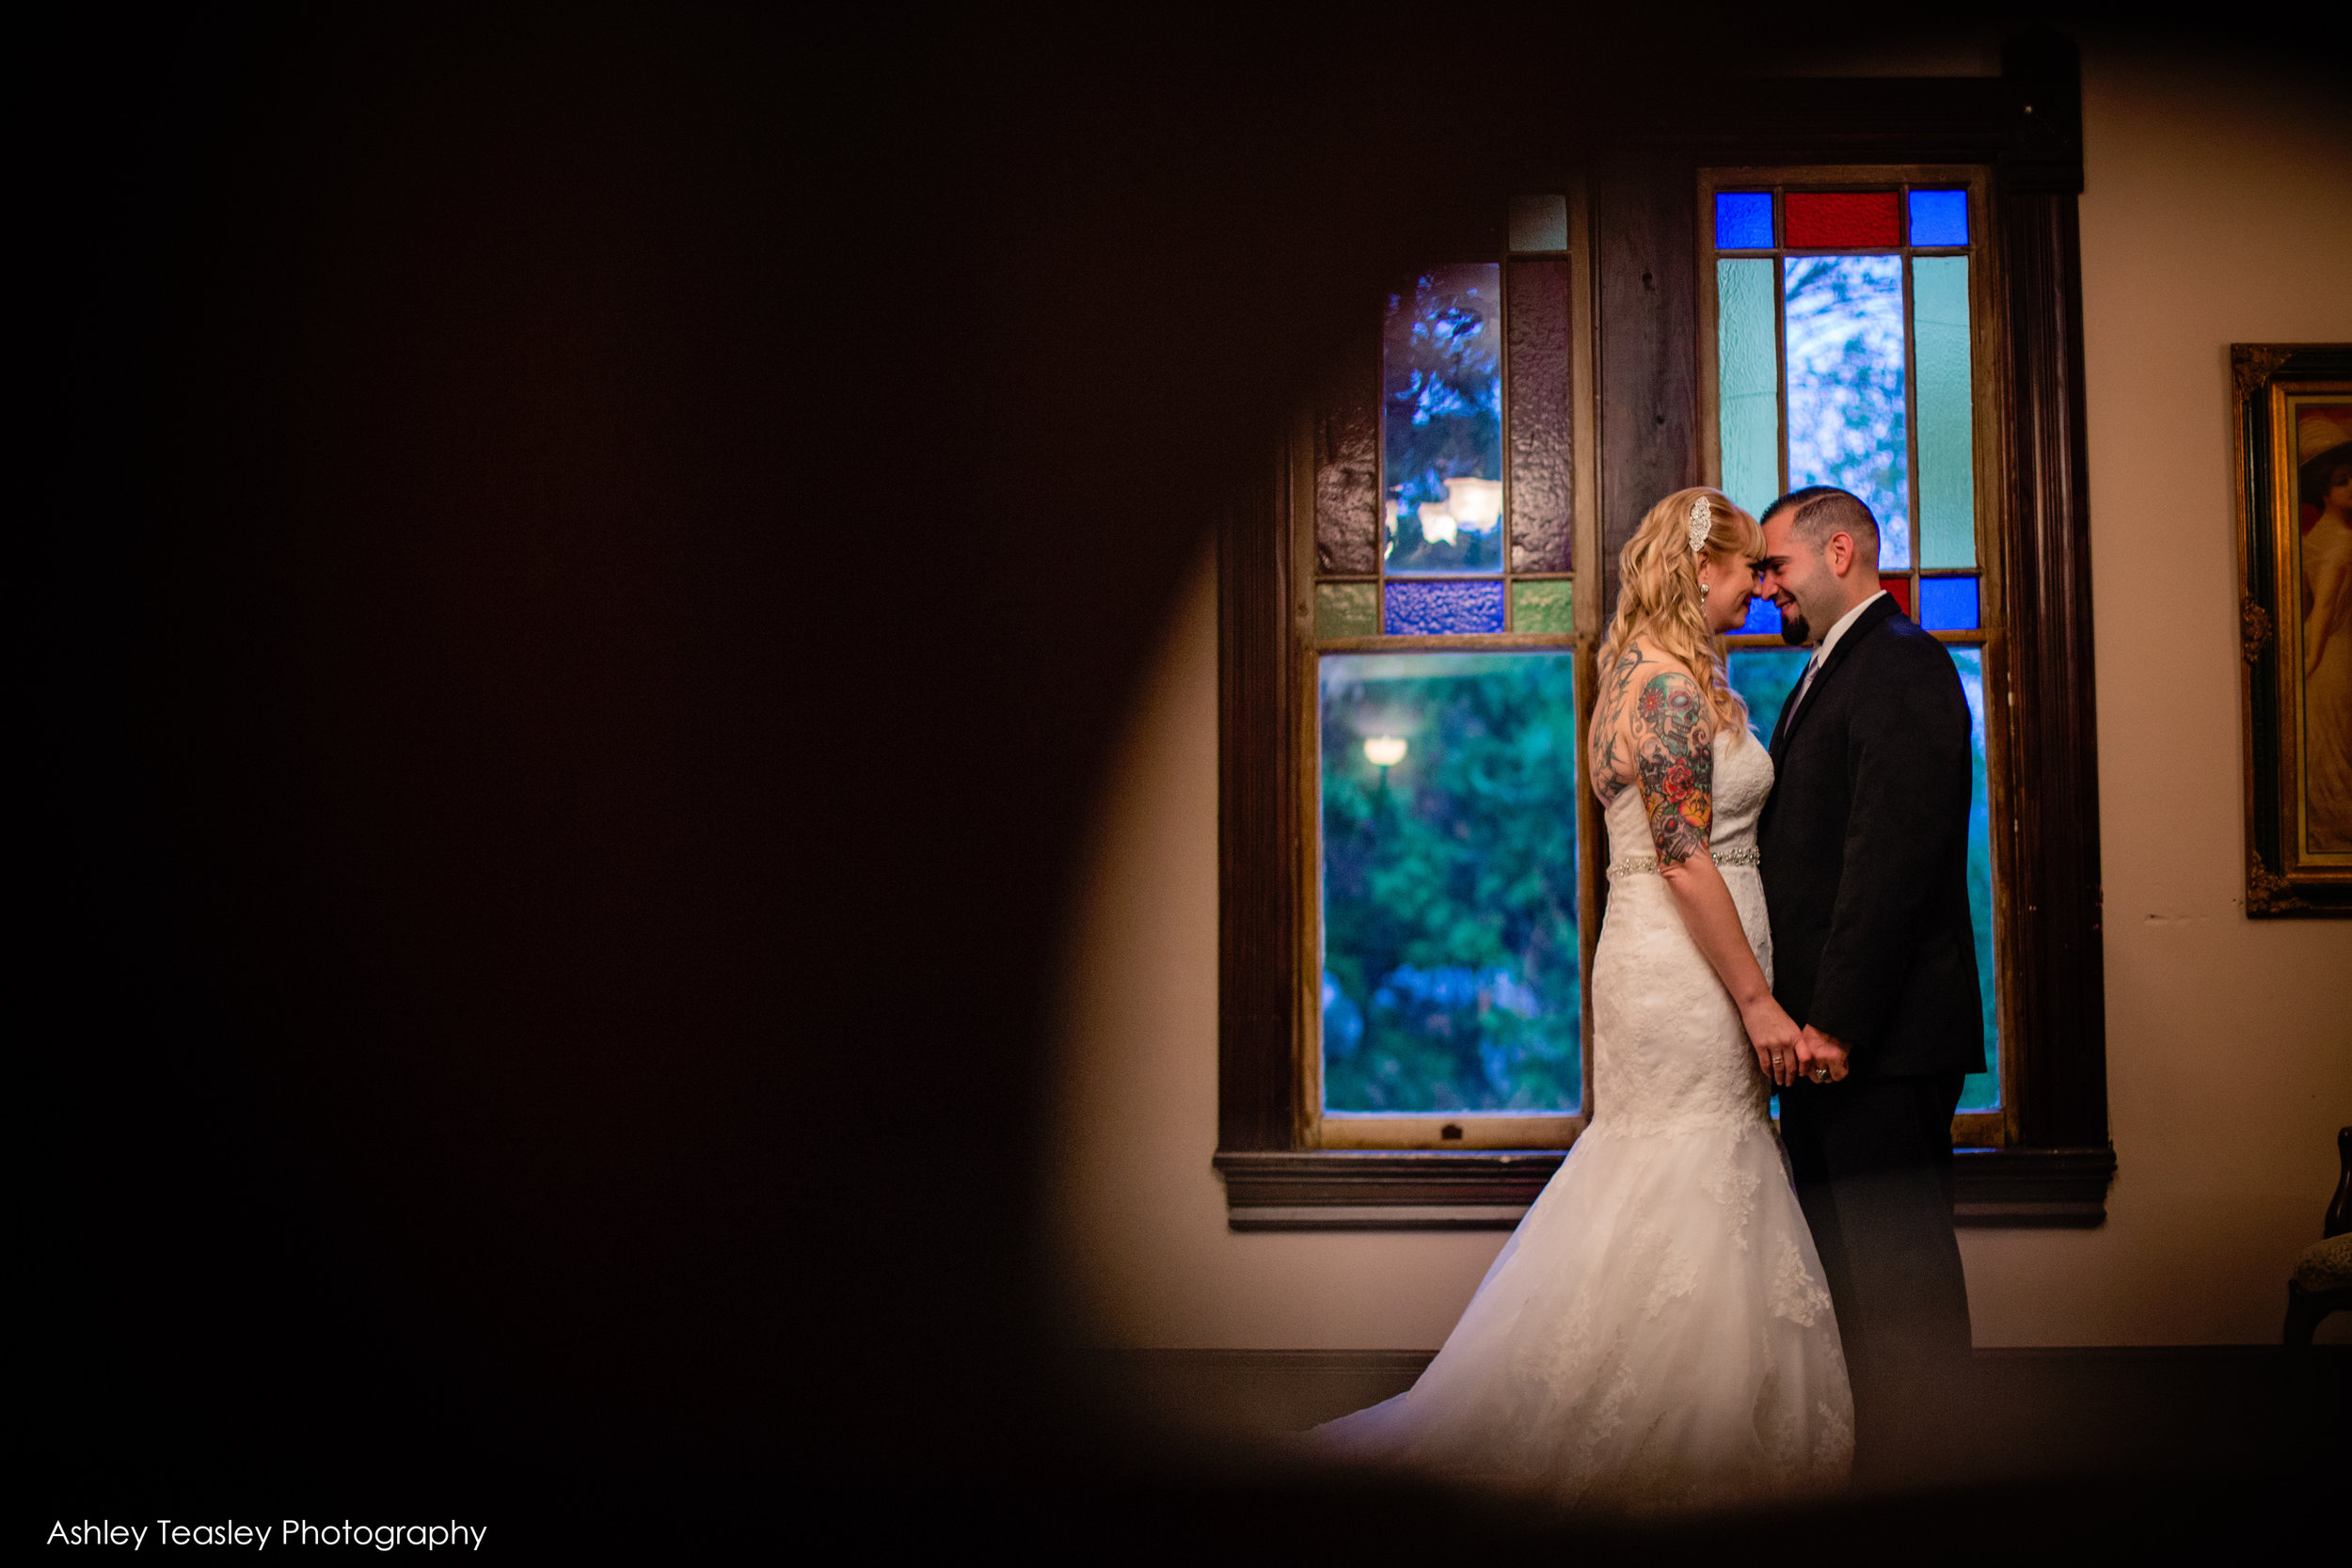 Marlaina & Kristopher - The Sequoia House Wedgewood - Sacramento Wedding Photographer - Ashley Teasley Photography--16.JPG